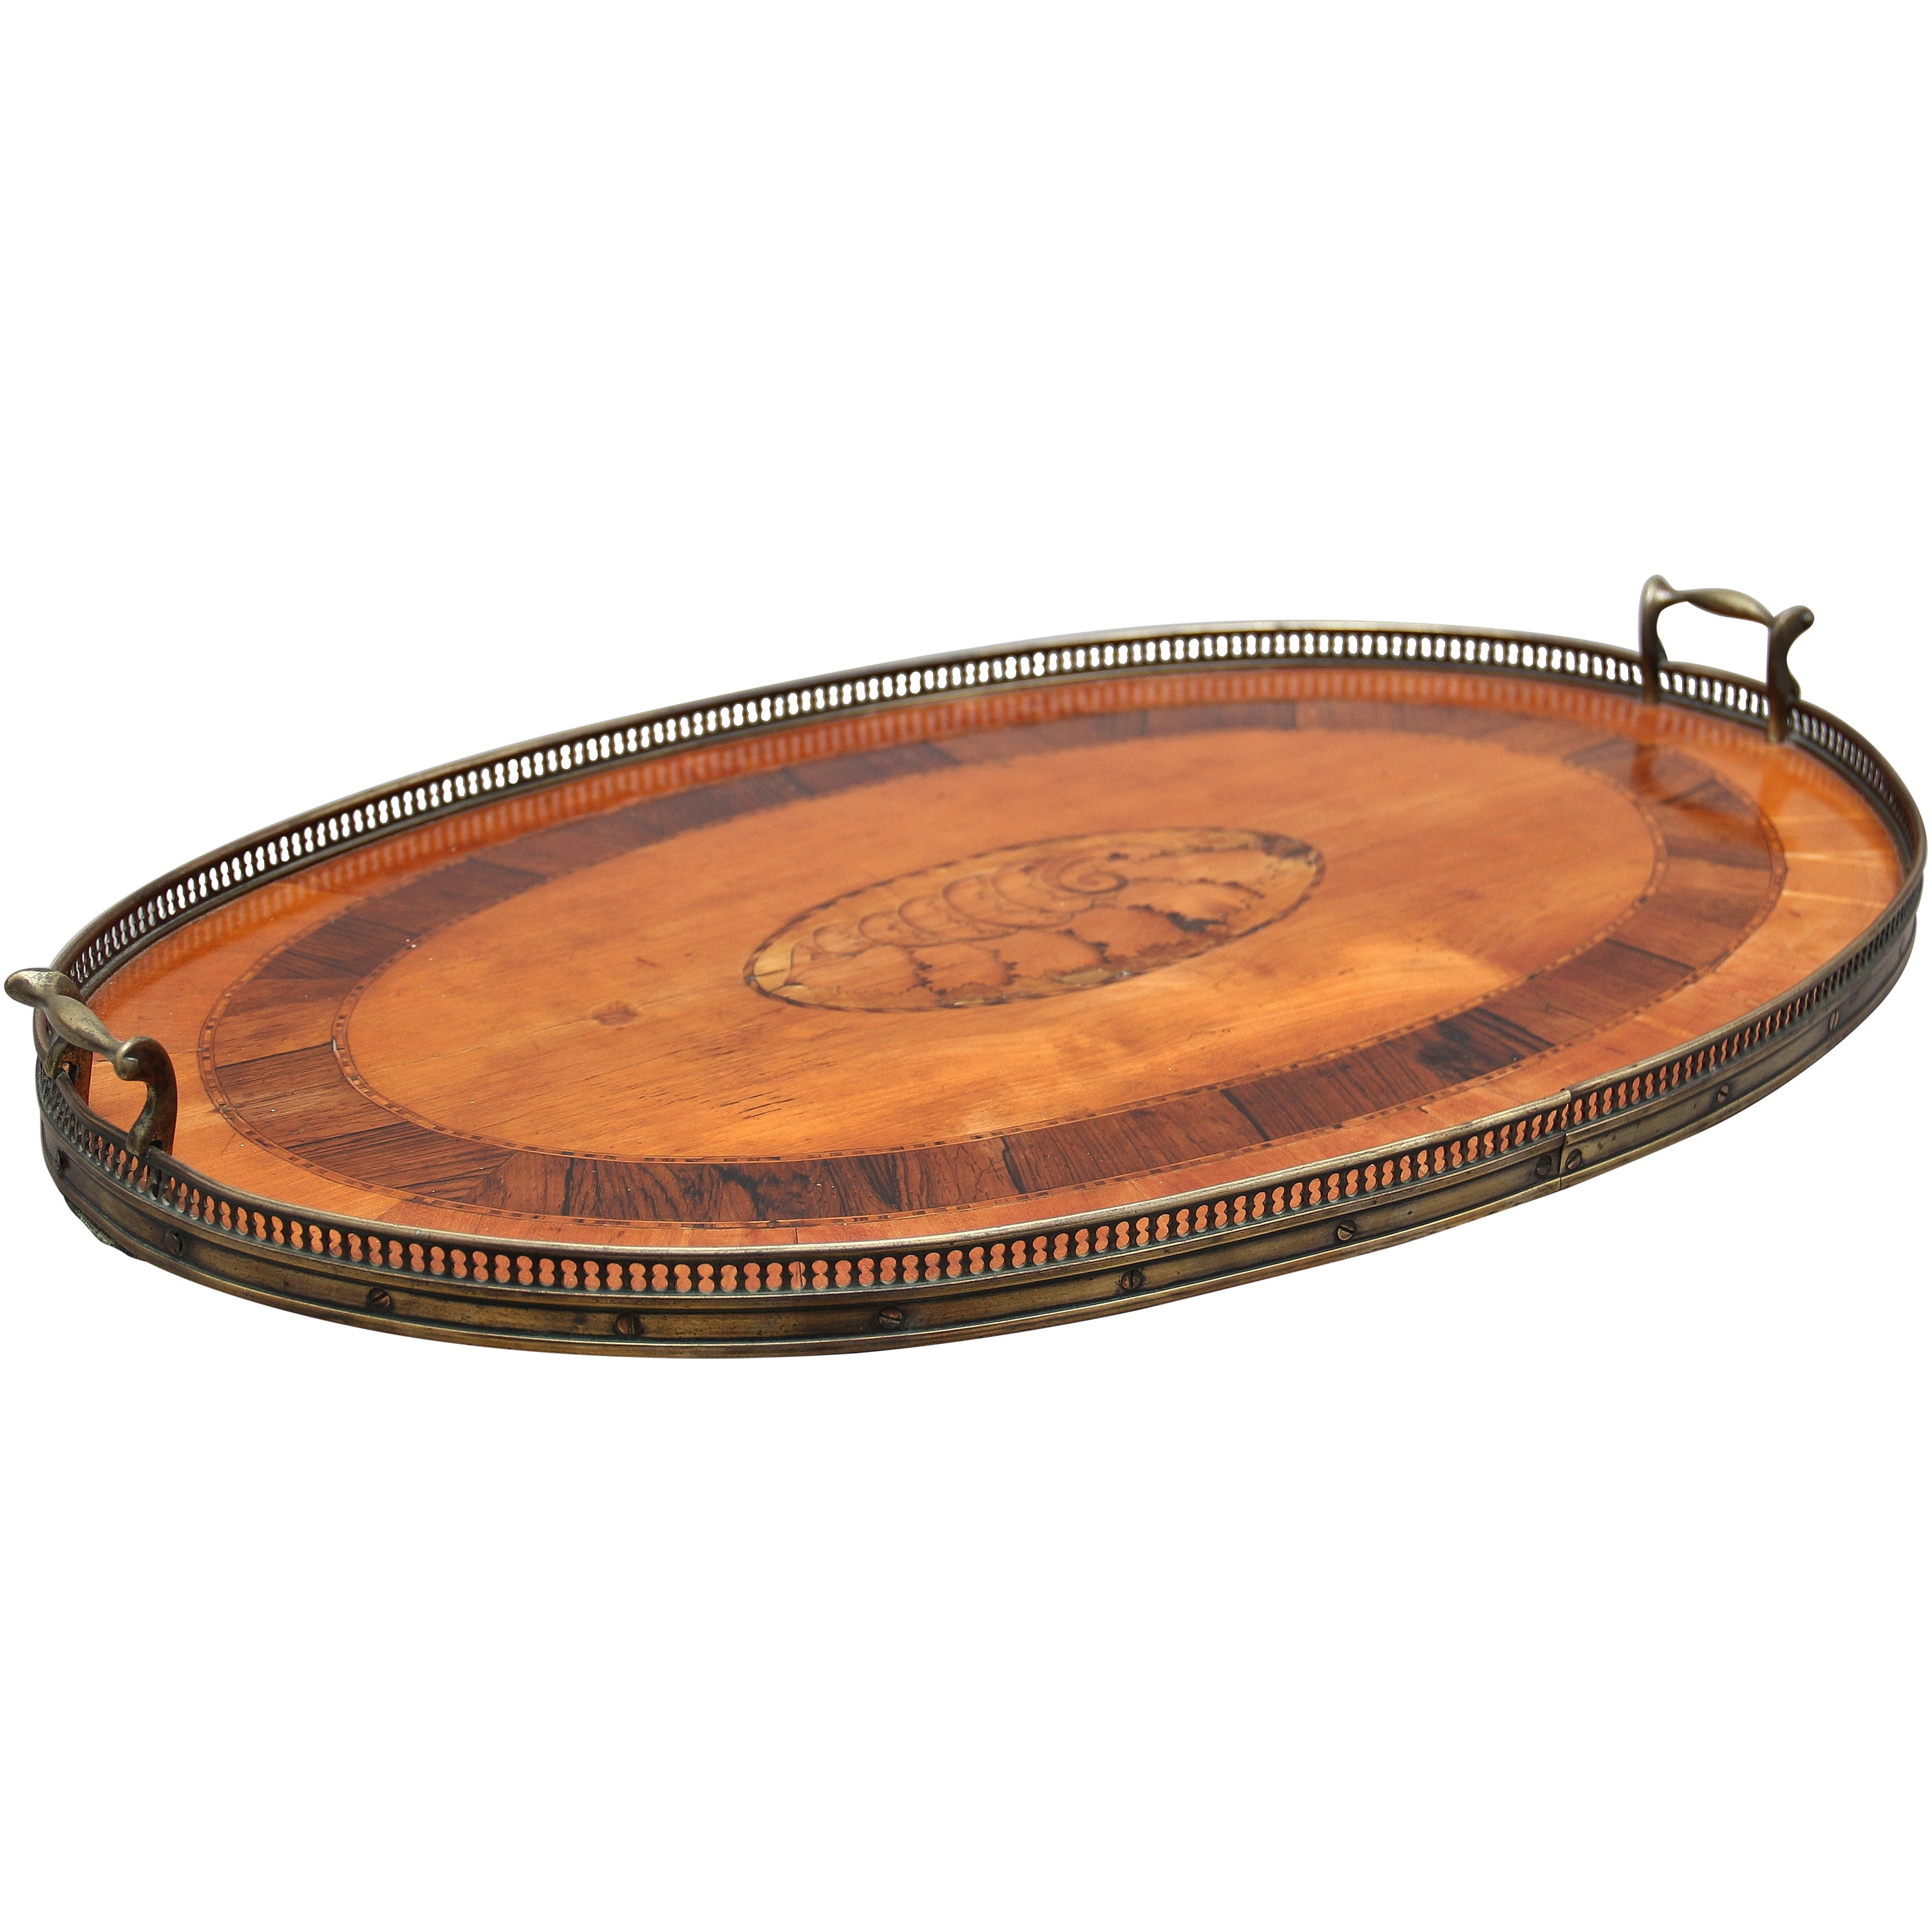 19th Century Satinwood, Brass and Inlaid Tray